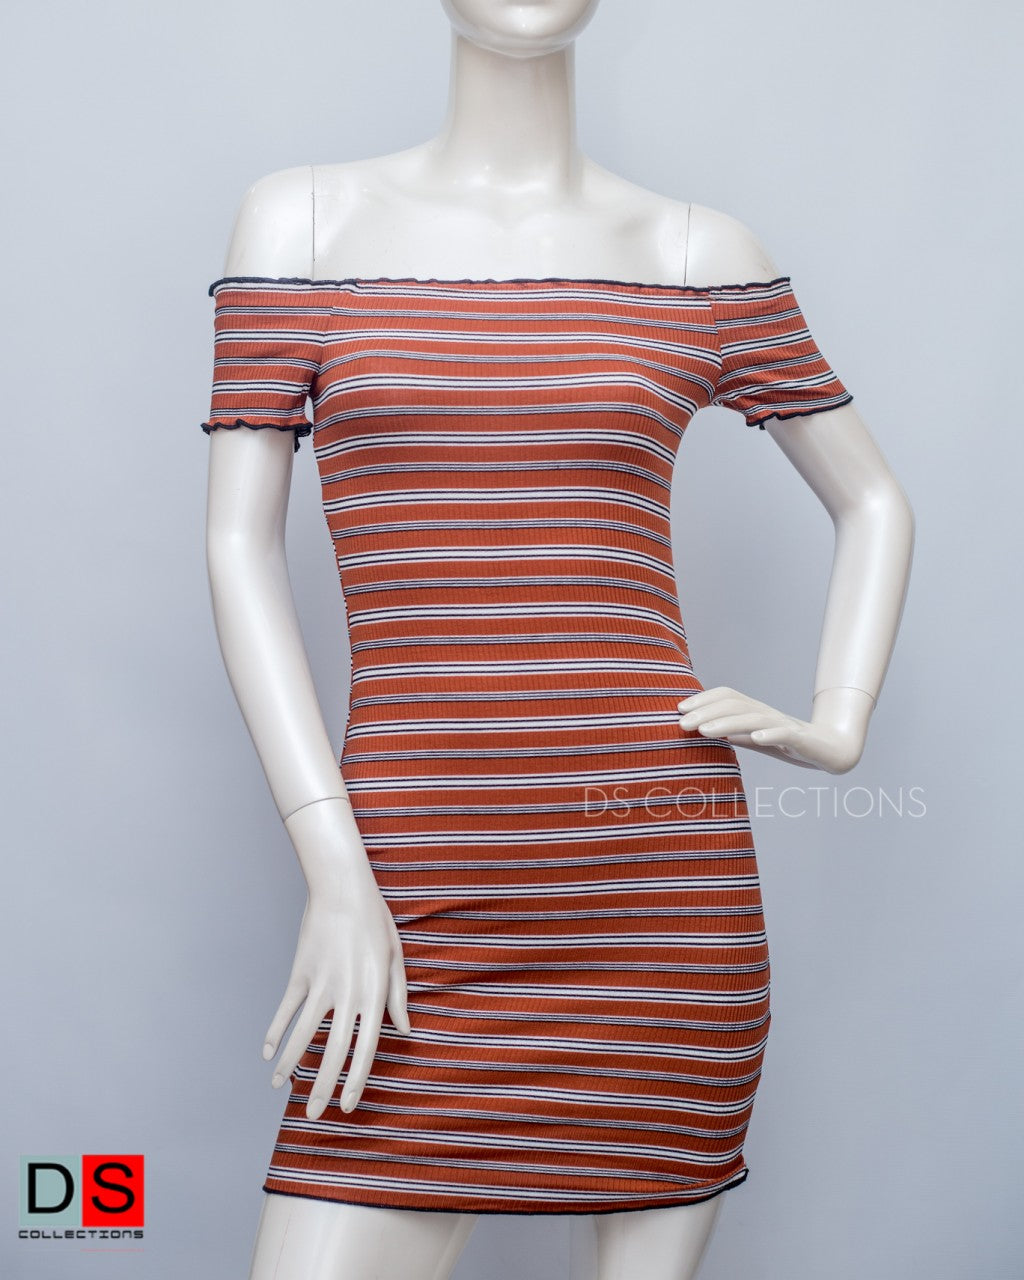 Women's Dress - Off - Shoulder Stripe Dress | DS Collections Nepal